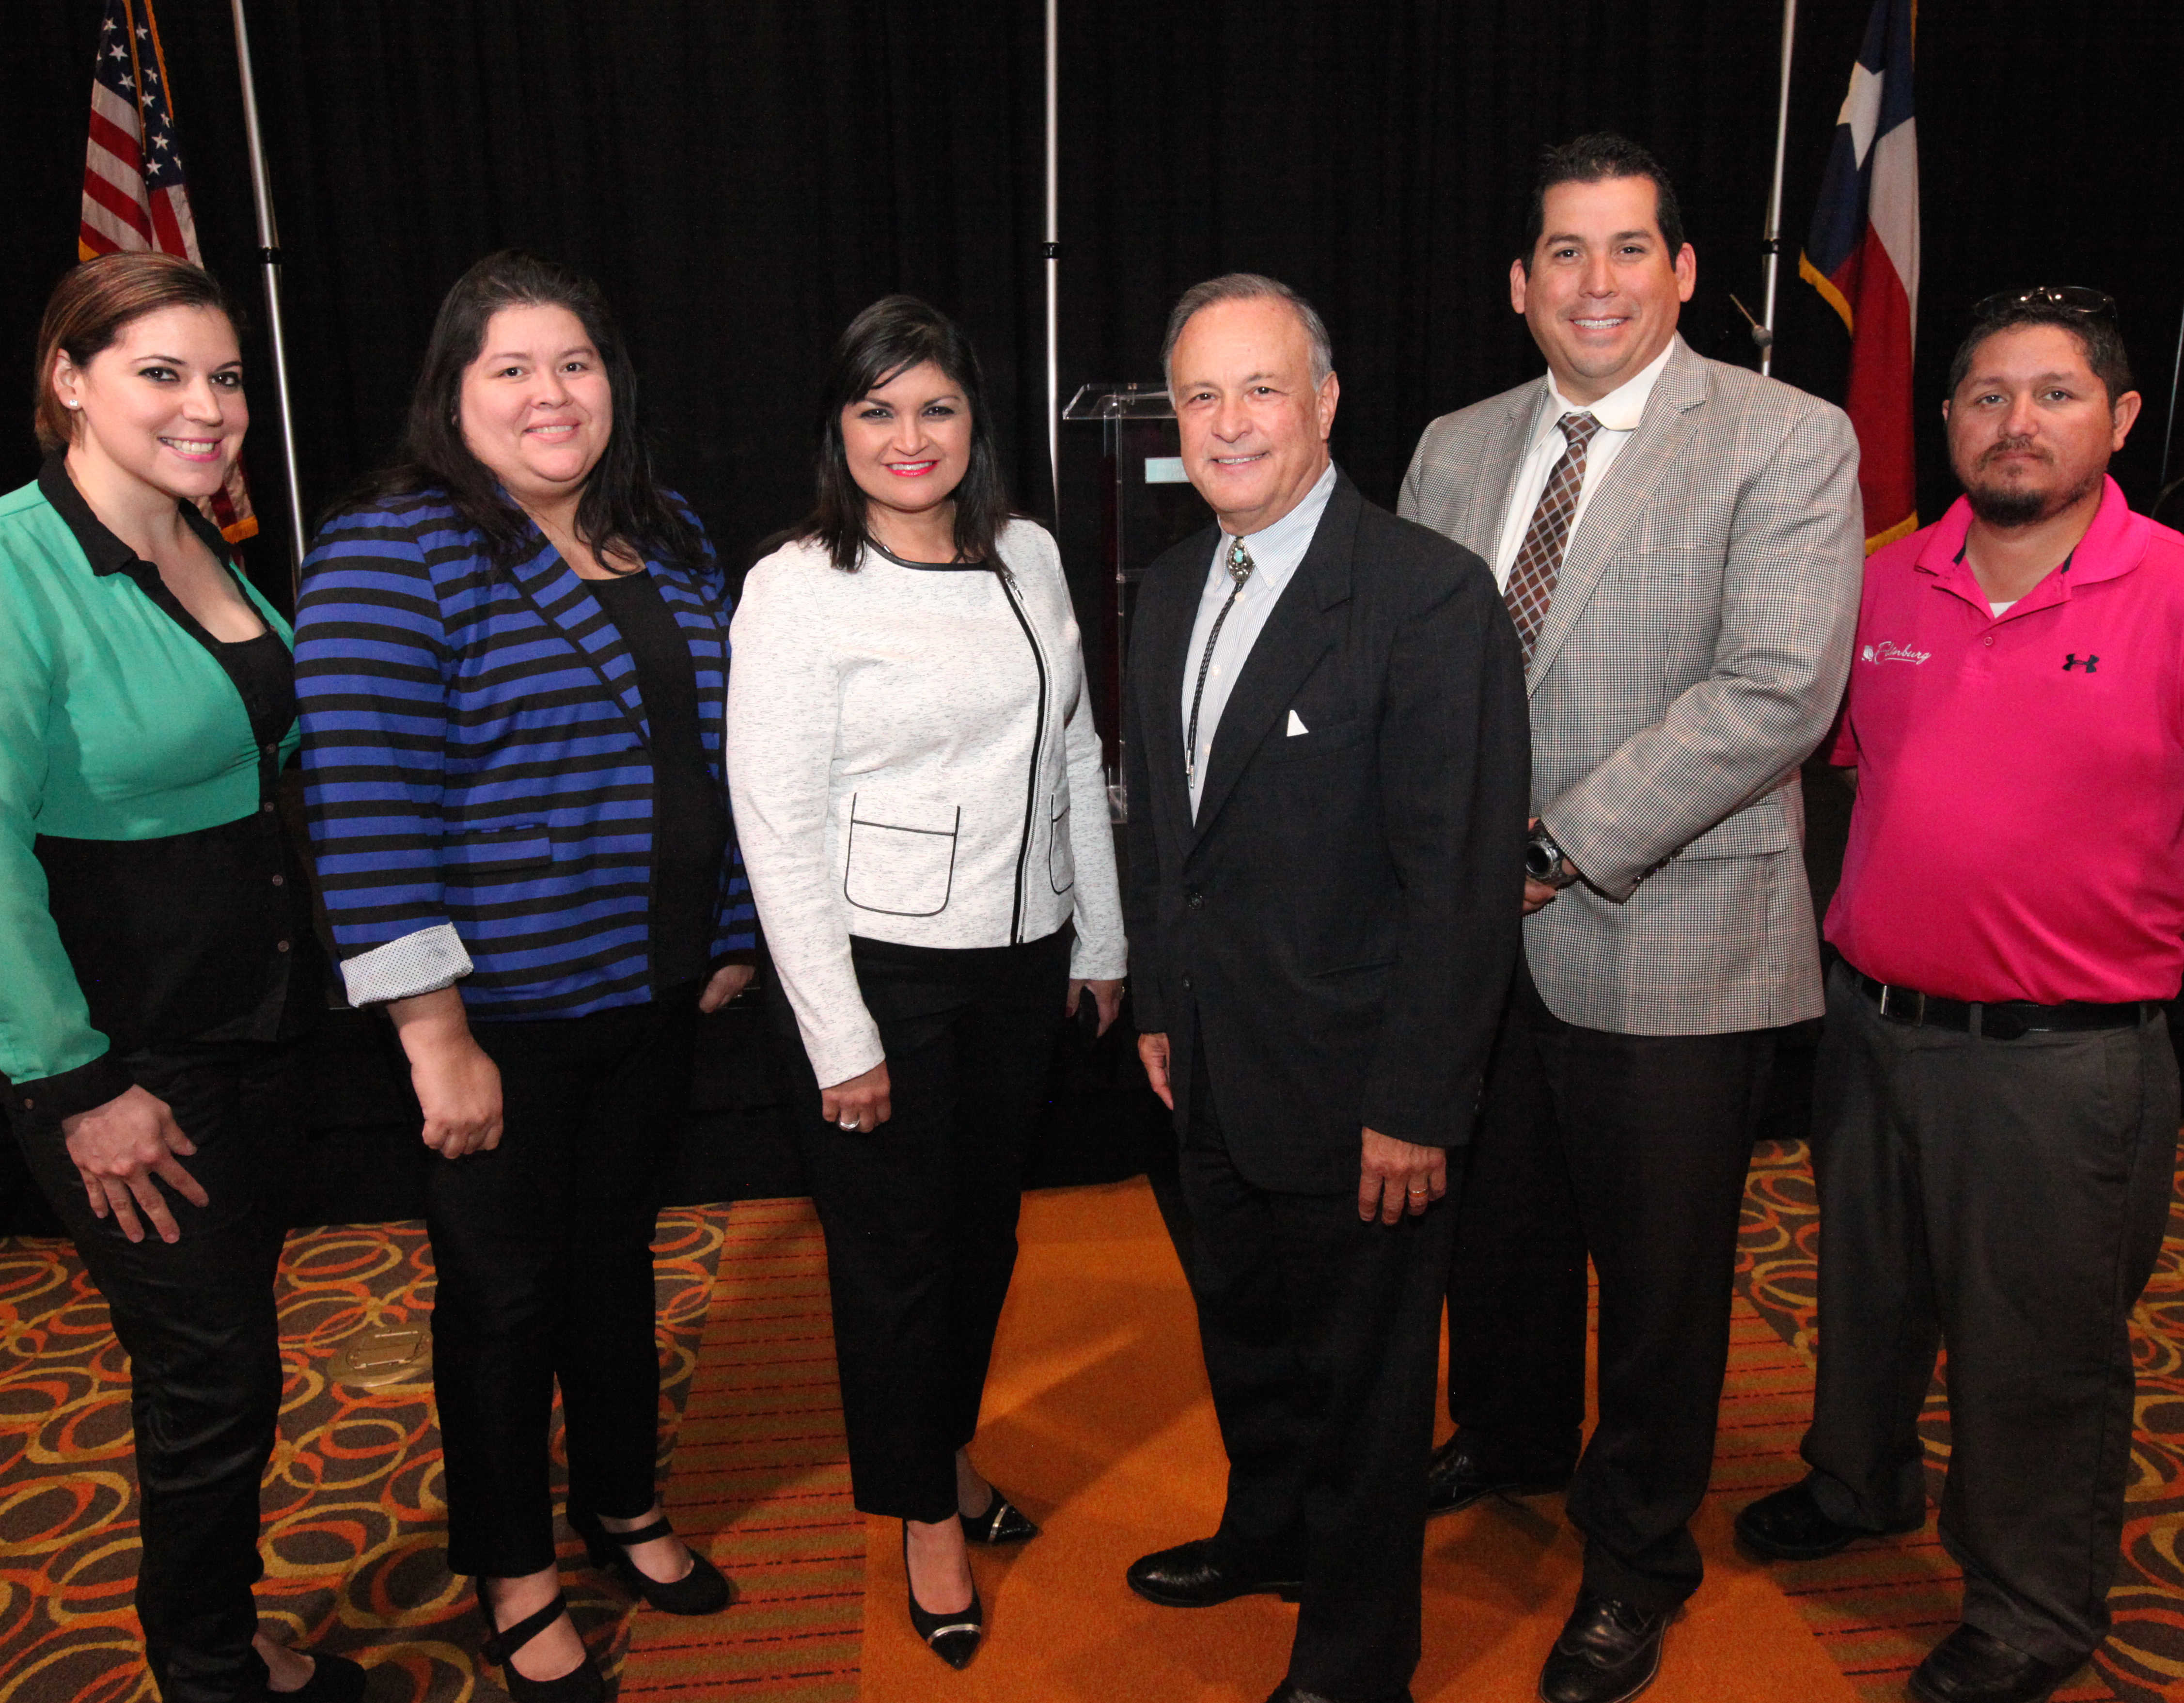 Construction in Edinburg for January 2016 off to big start, topping $36 million in value, with soccer stadium and multi-family complex leading the way